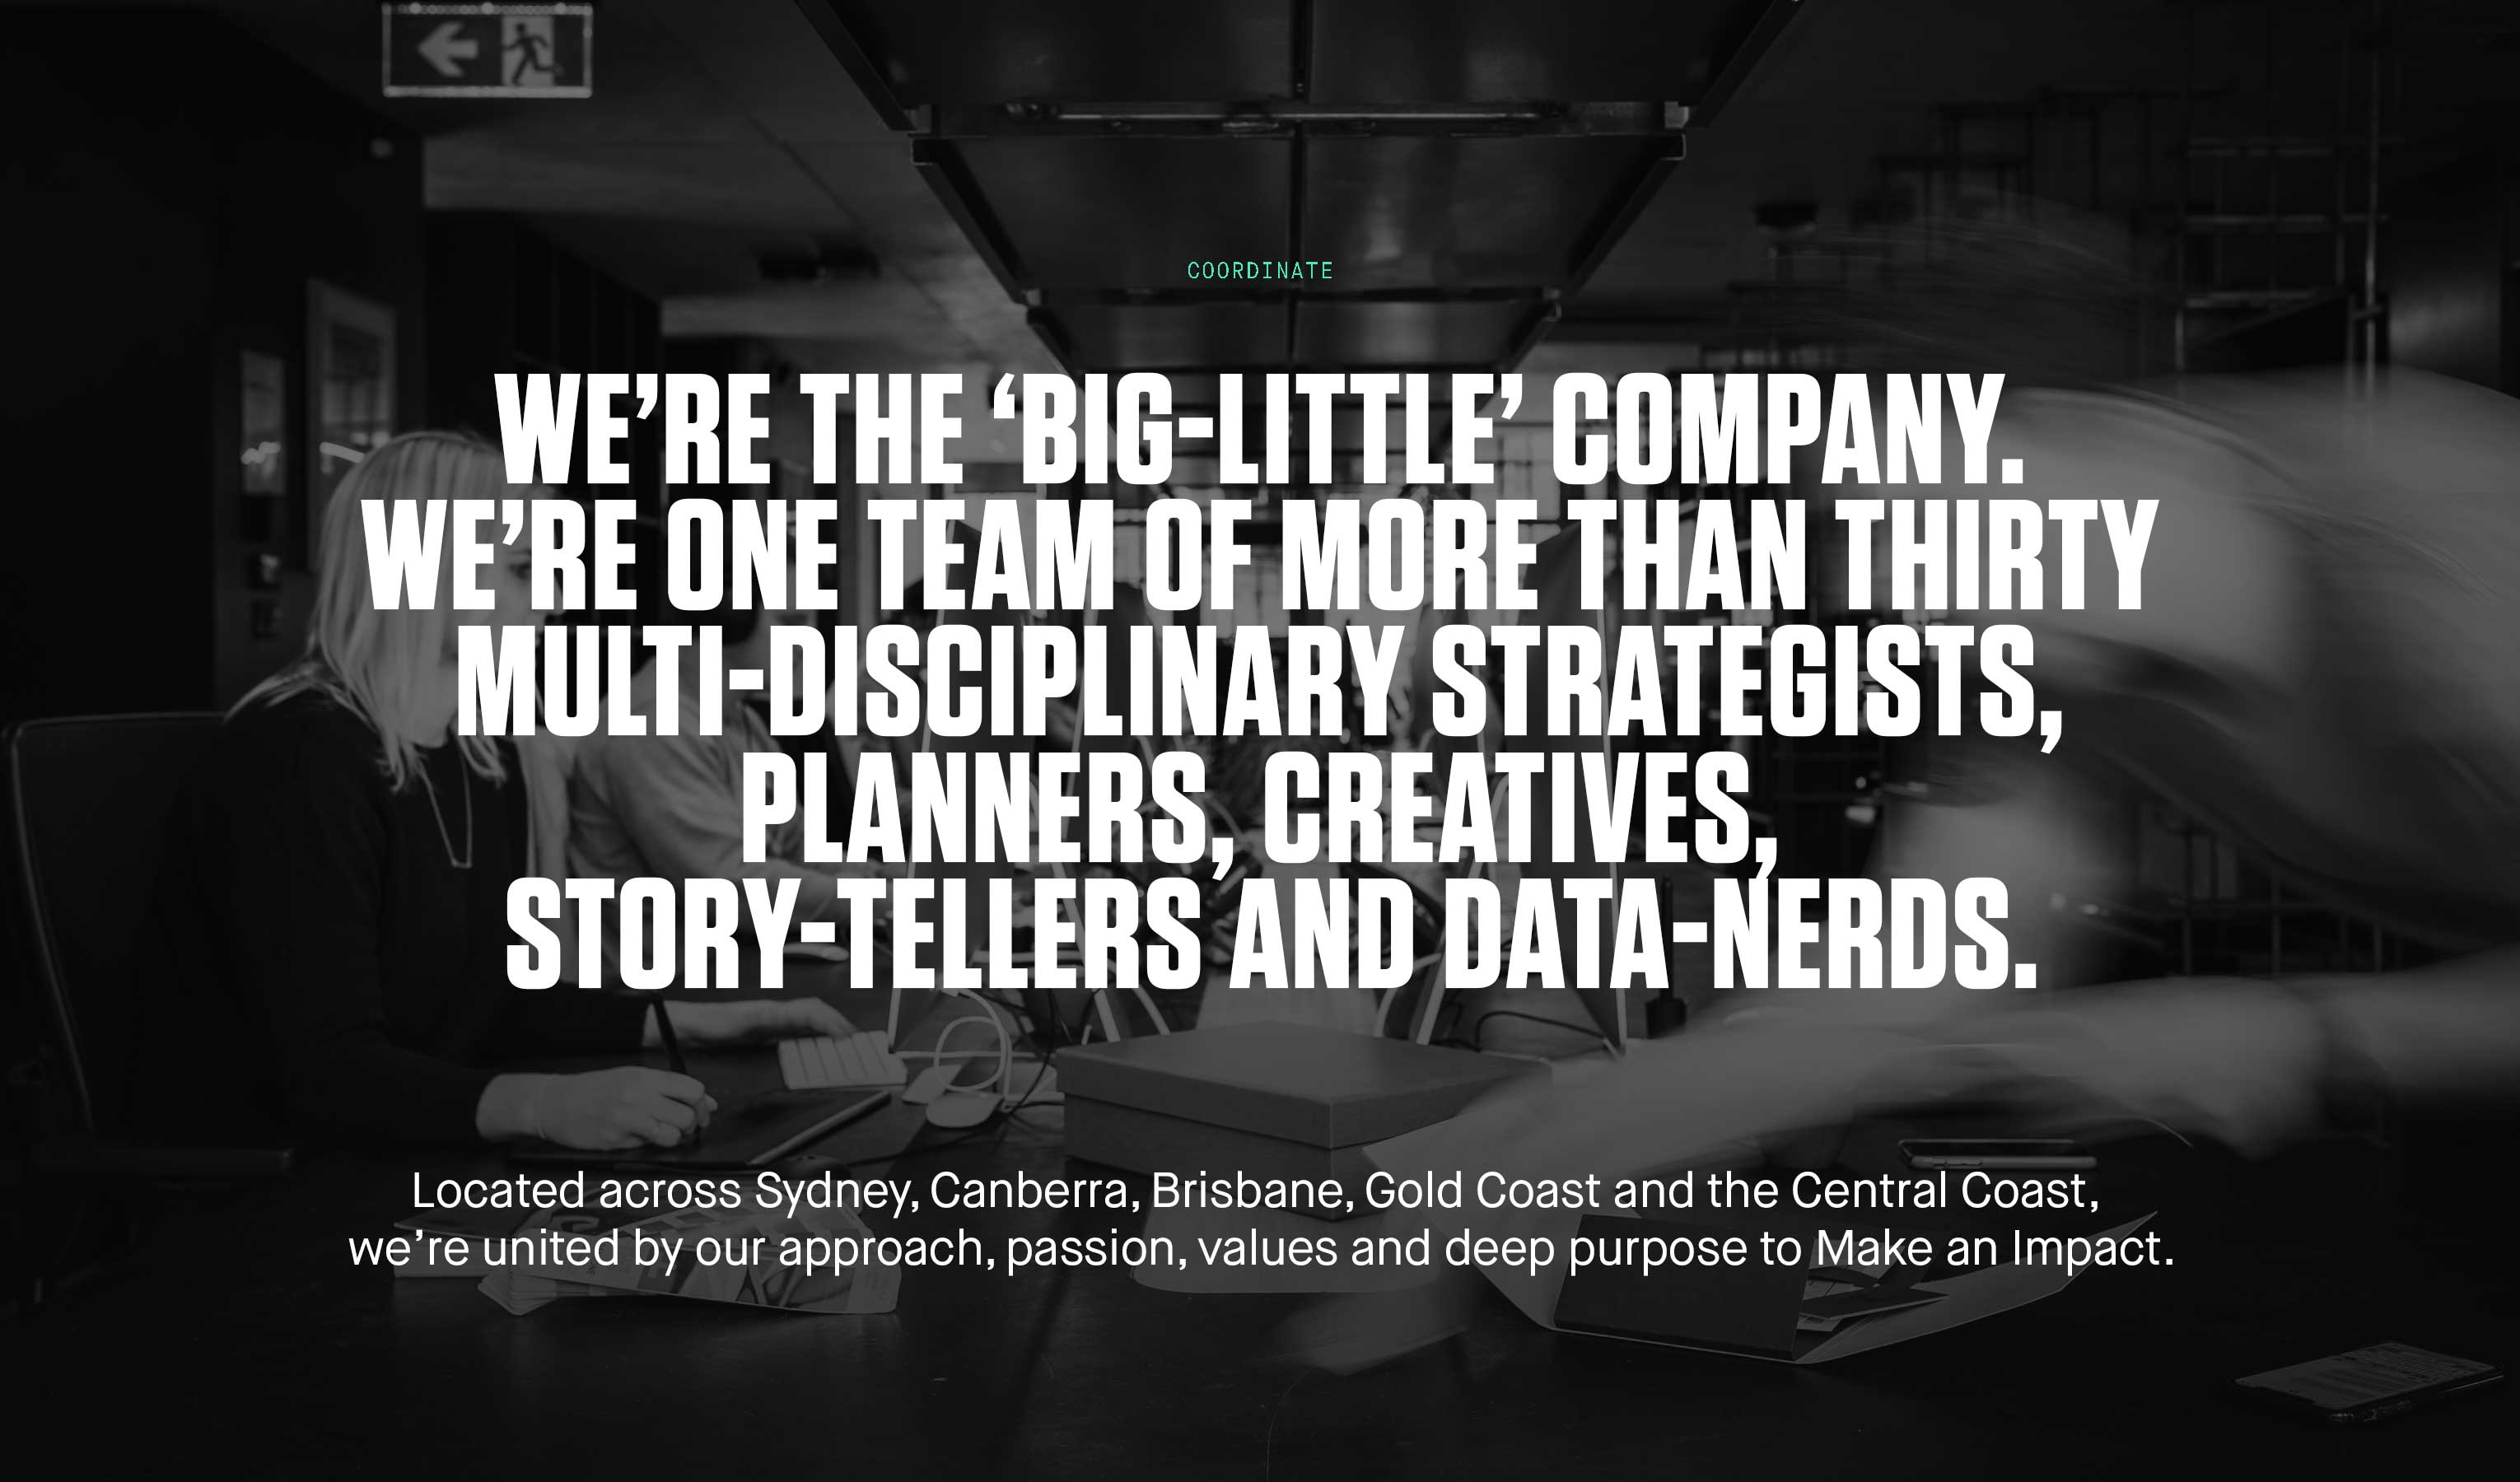 We're the 'big-little' company. We're one team of more than thirty multi-disciplinary strategists, planners, creatives, story-tellers and data-nerds. Located across Sydney, Canberra, Brisbane, Gold Coast and the Central Coast, we're united by our approach, passion, values and deep purpose to Make an Impact.